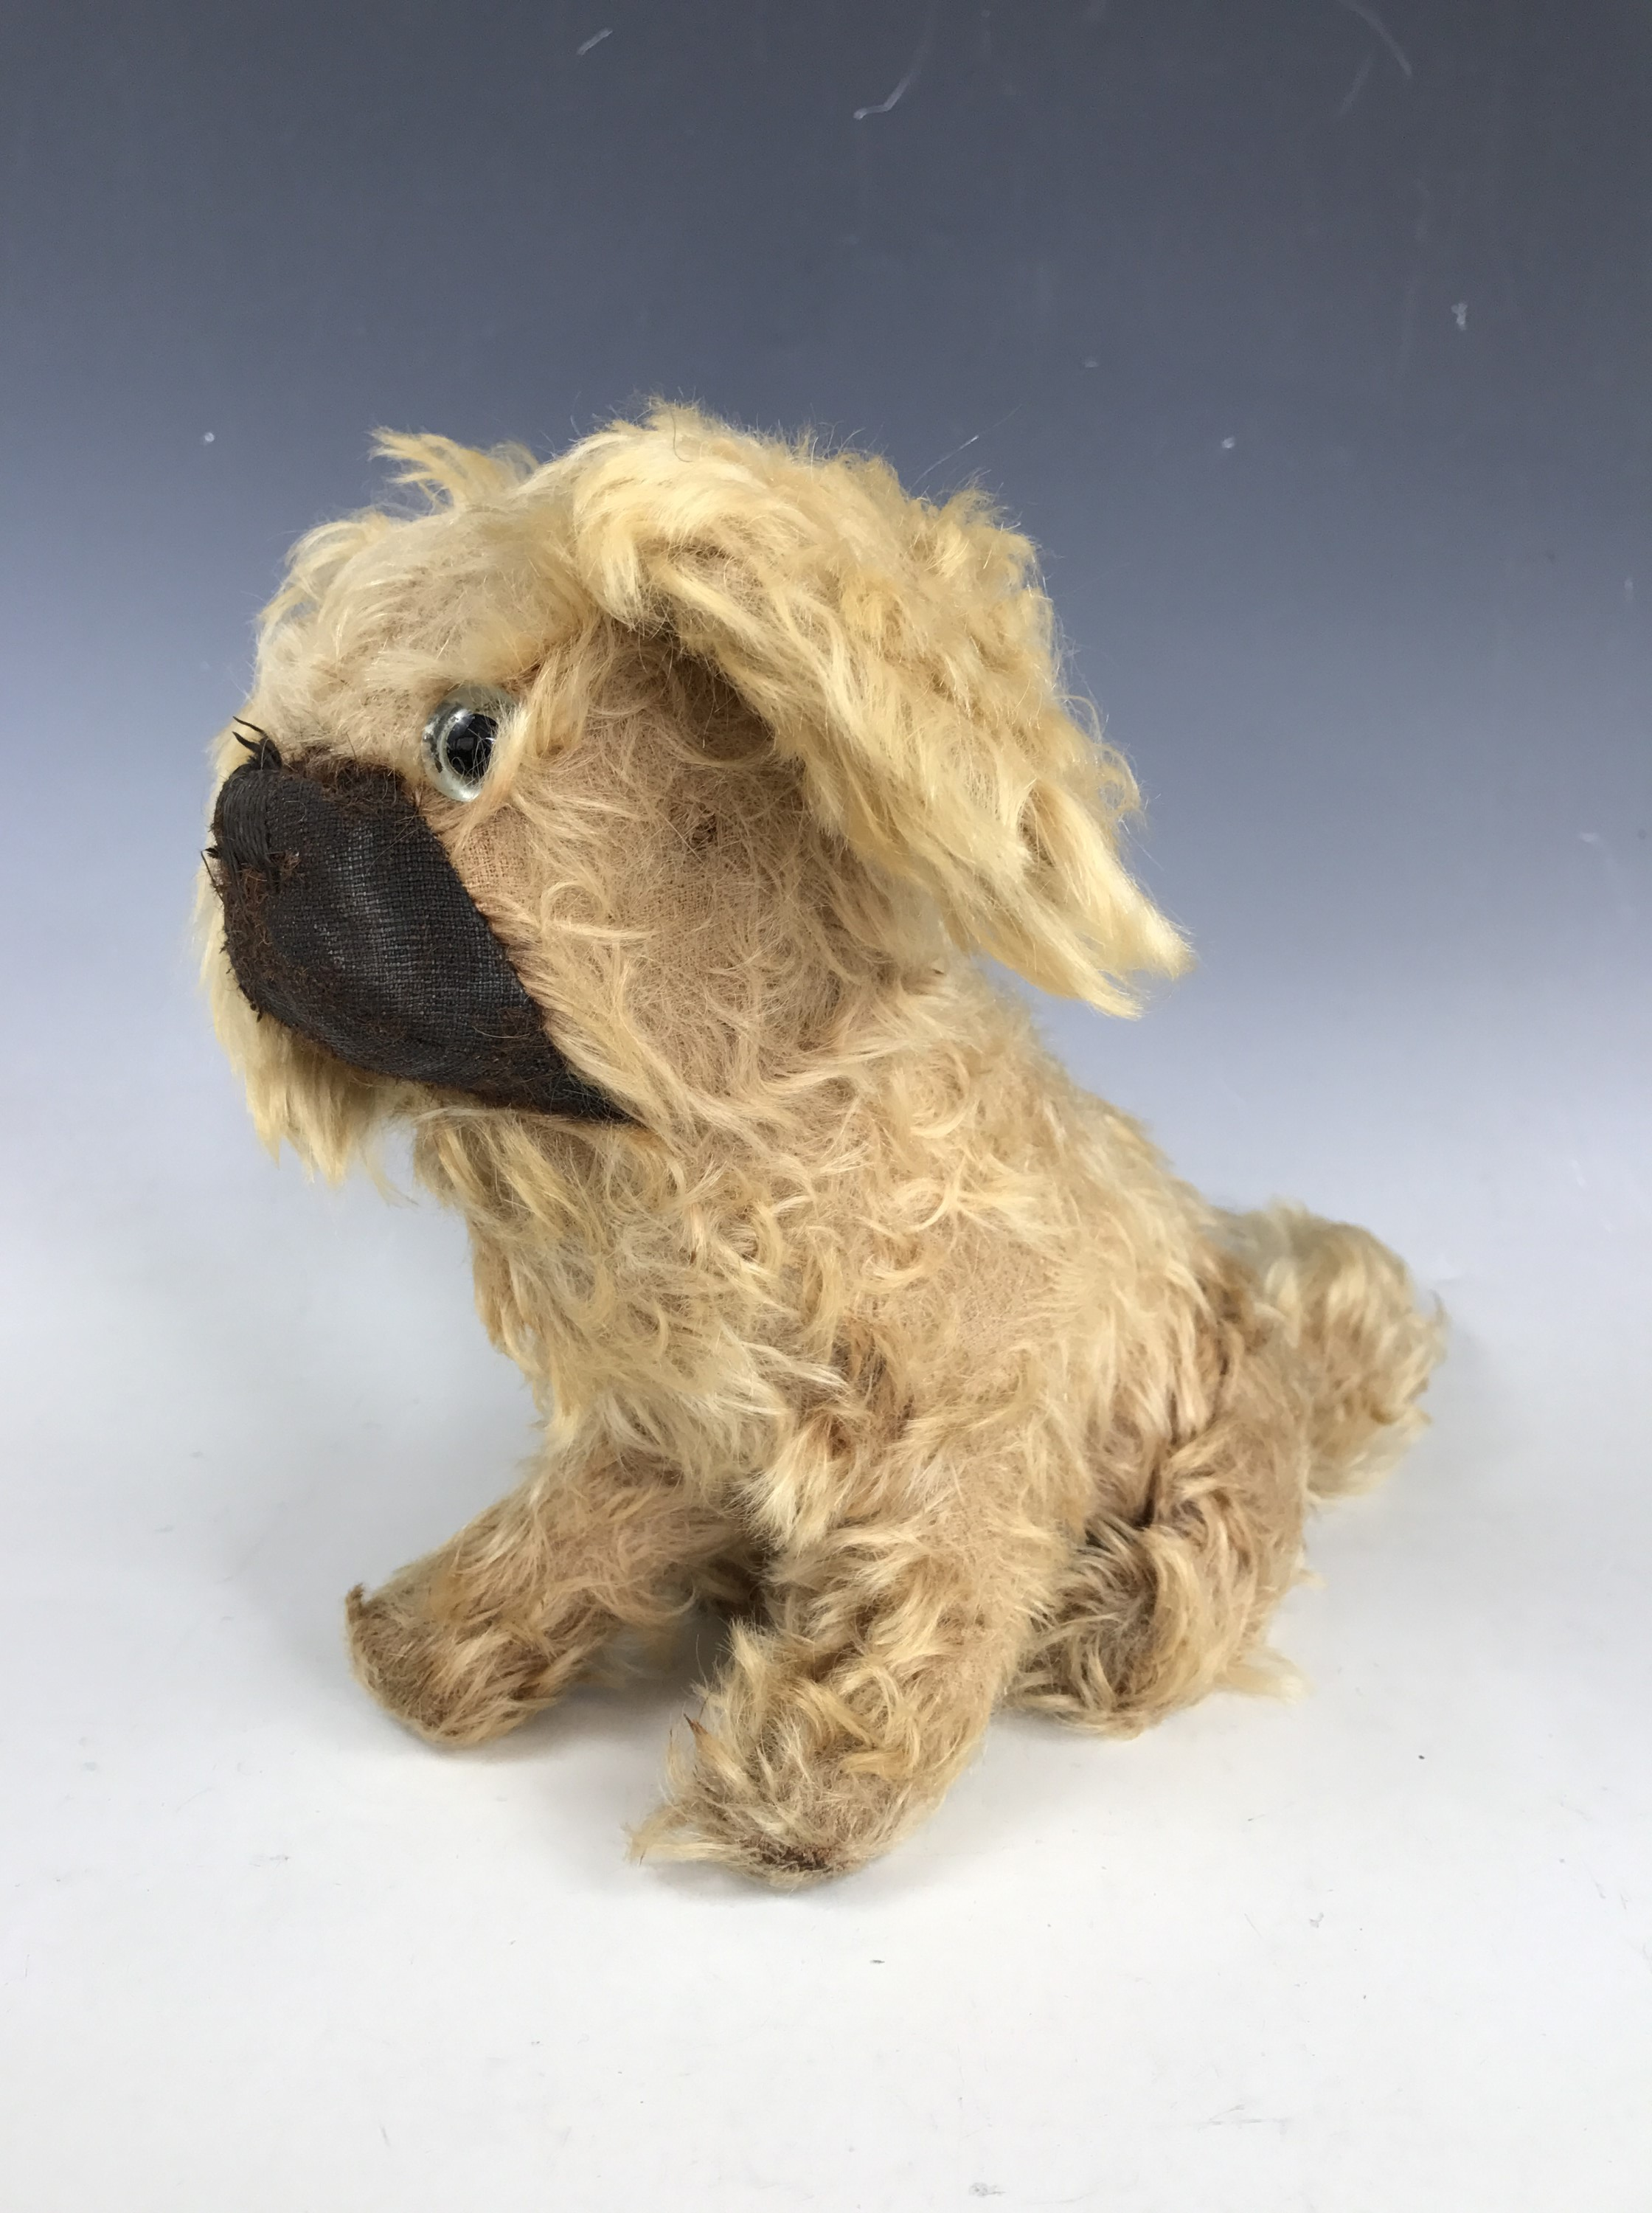 Lot 50 - A vintage toy dog, having golden mohair, a single glass eye, and a brown mohair muzzle, wood wool